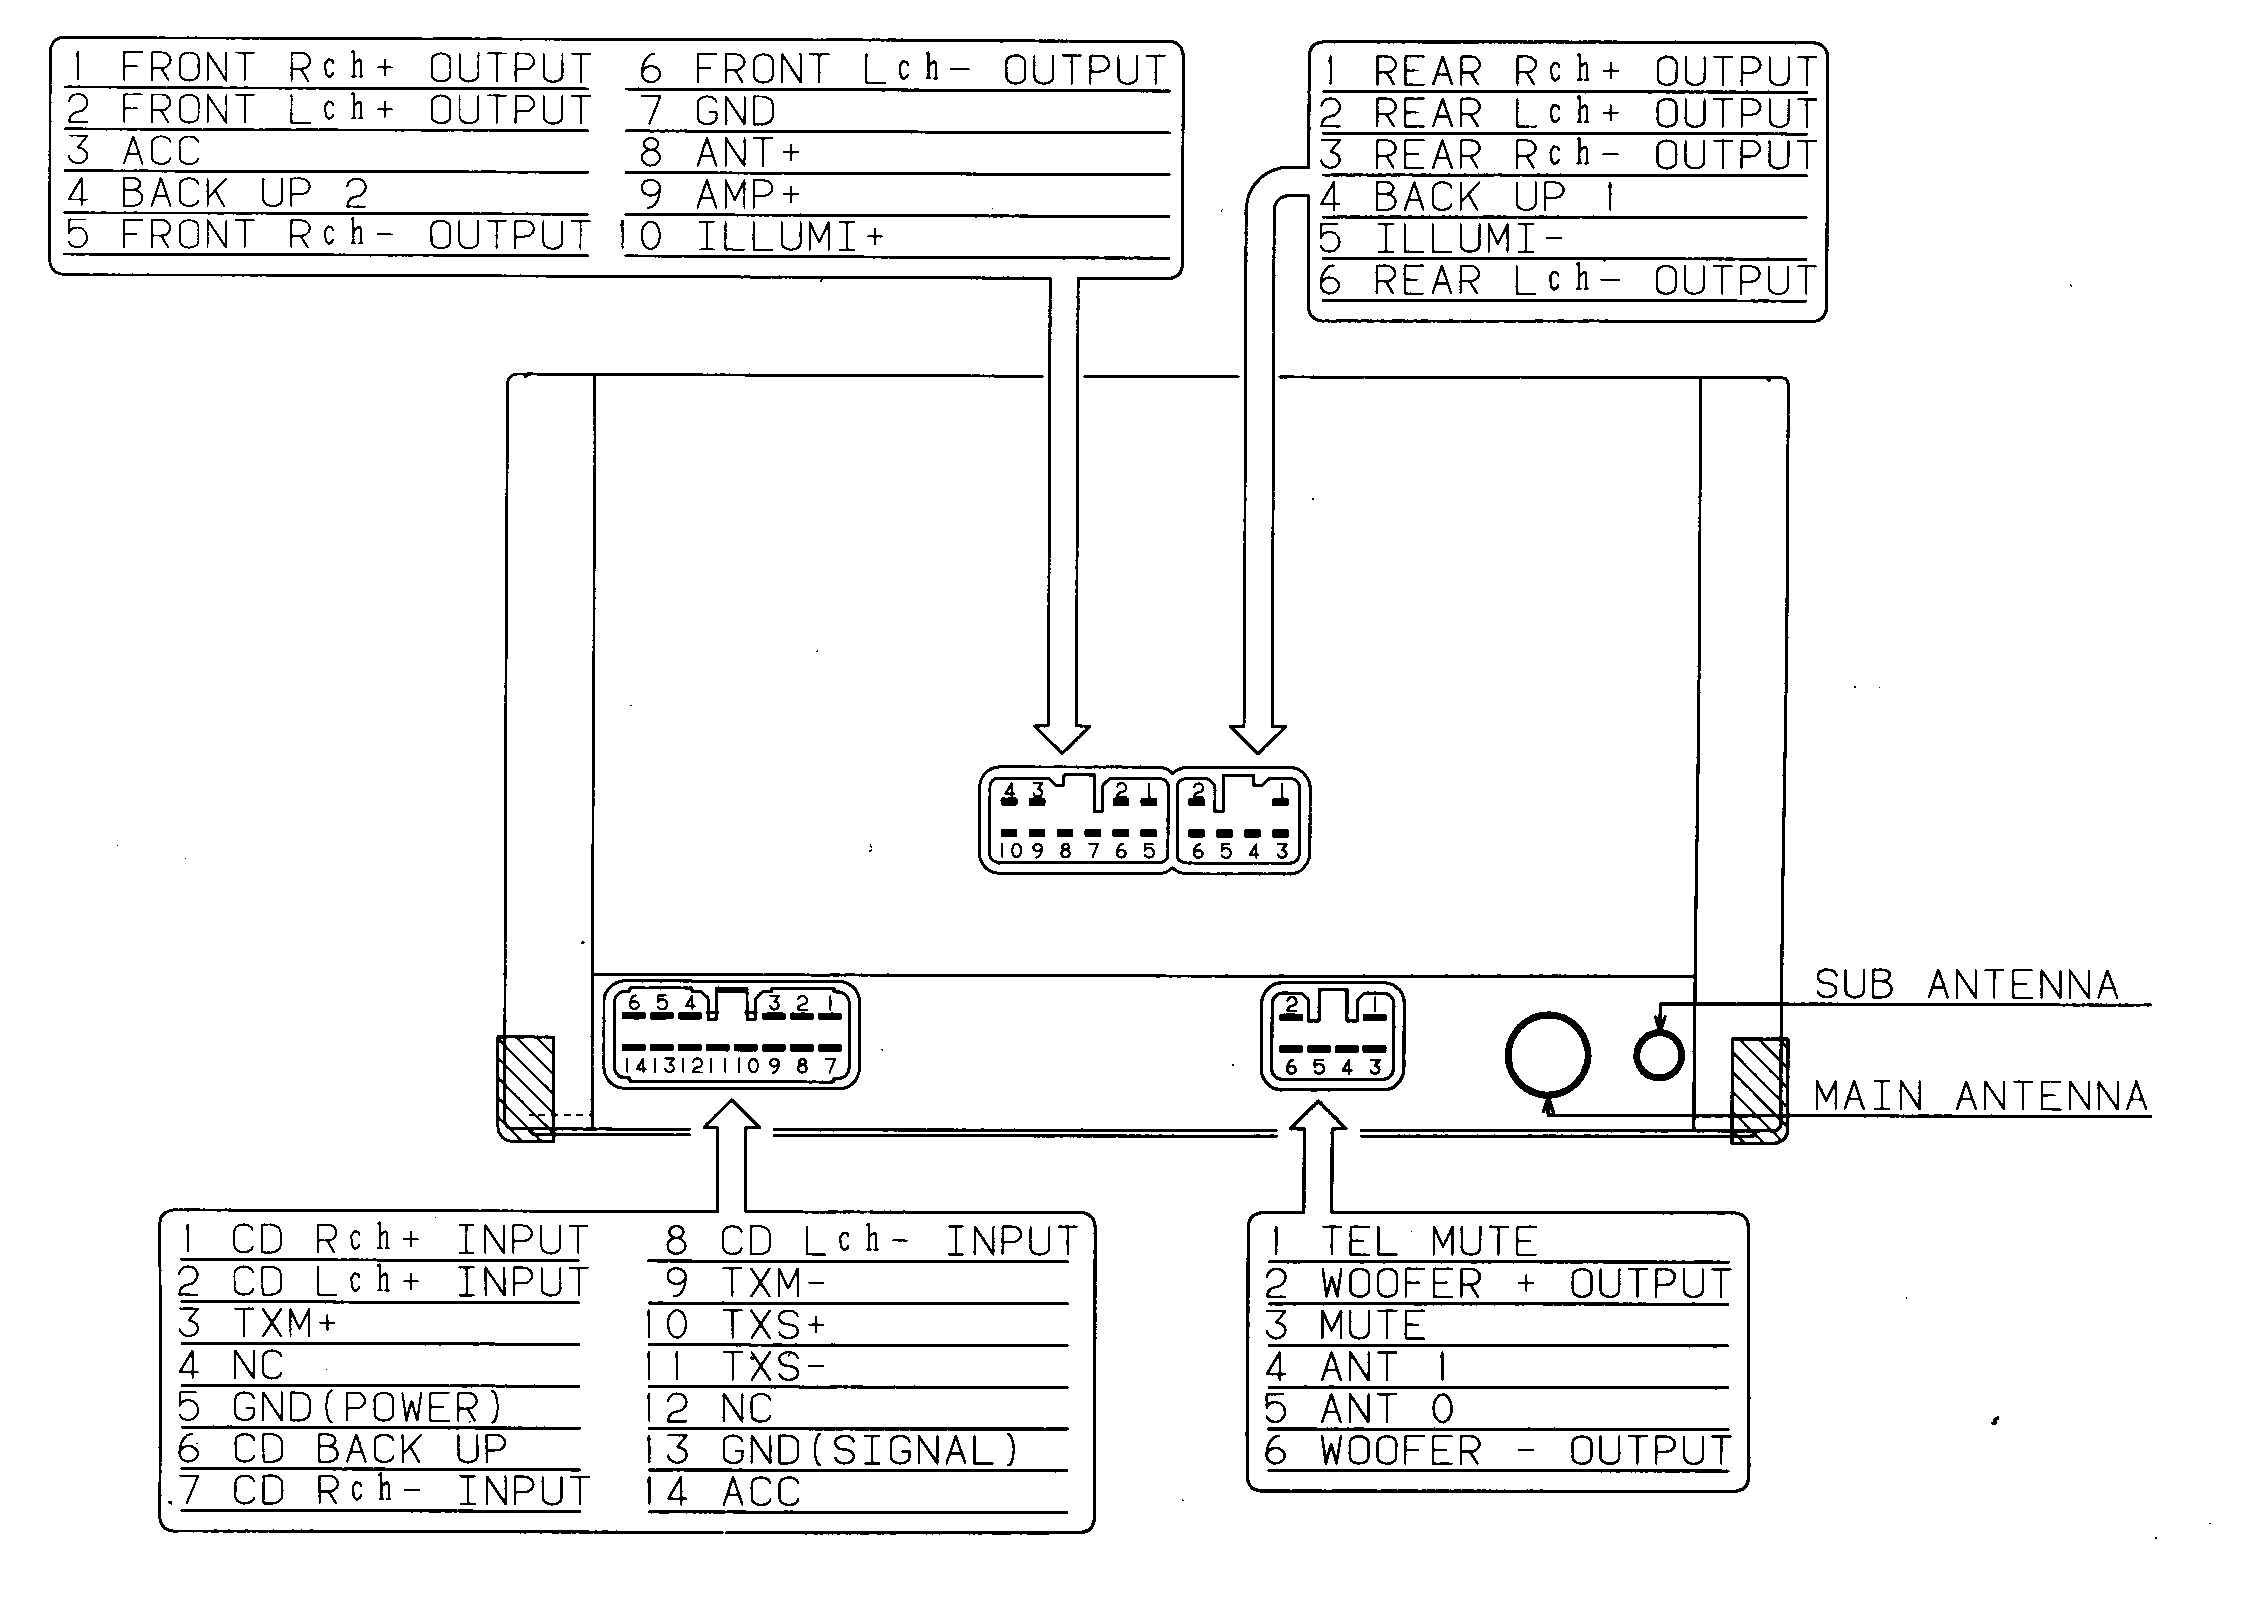 Lexus car stereo wiring diagram harness pinout connector wire lexus rx330 radio wiring diagram lexus rx330 parts diagram  at creativeand.co